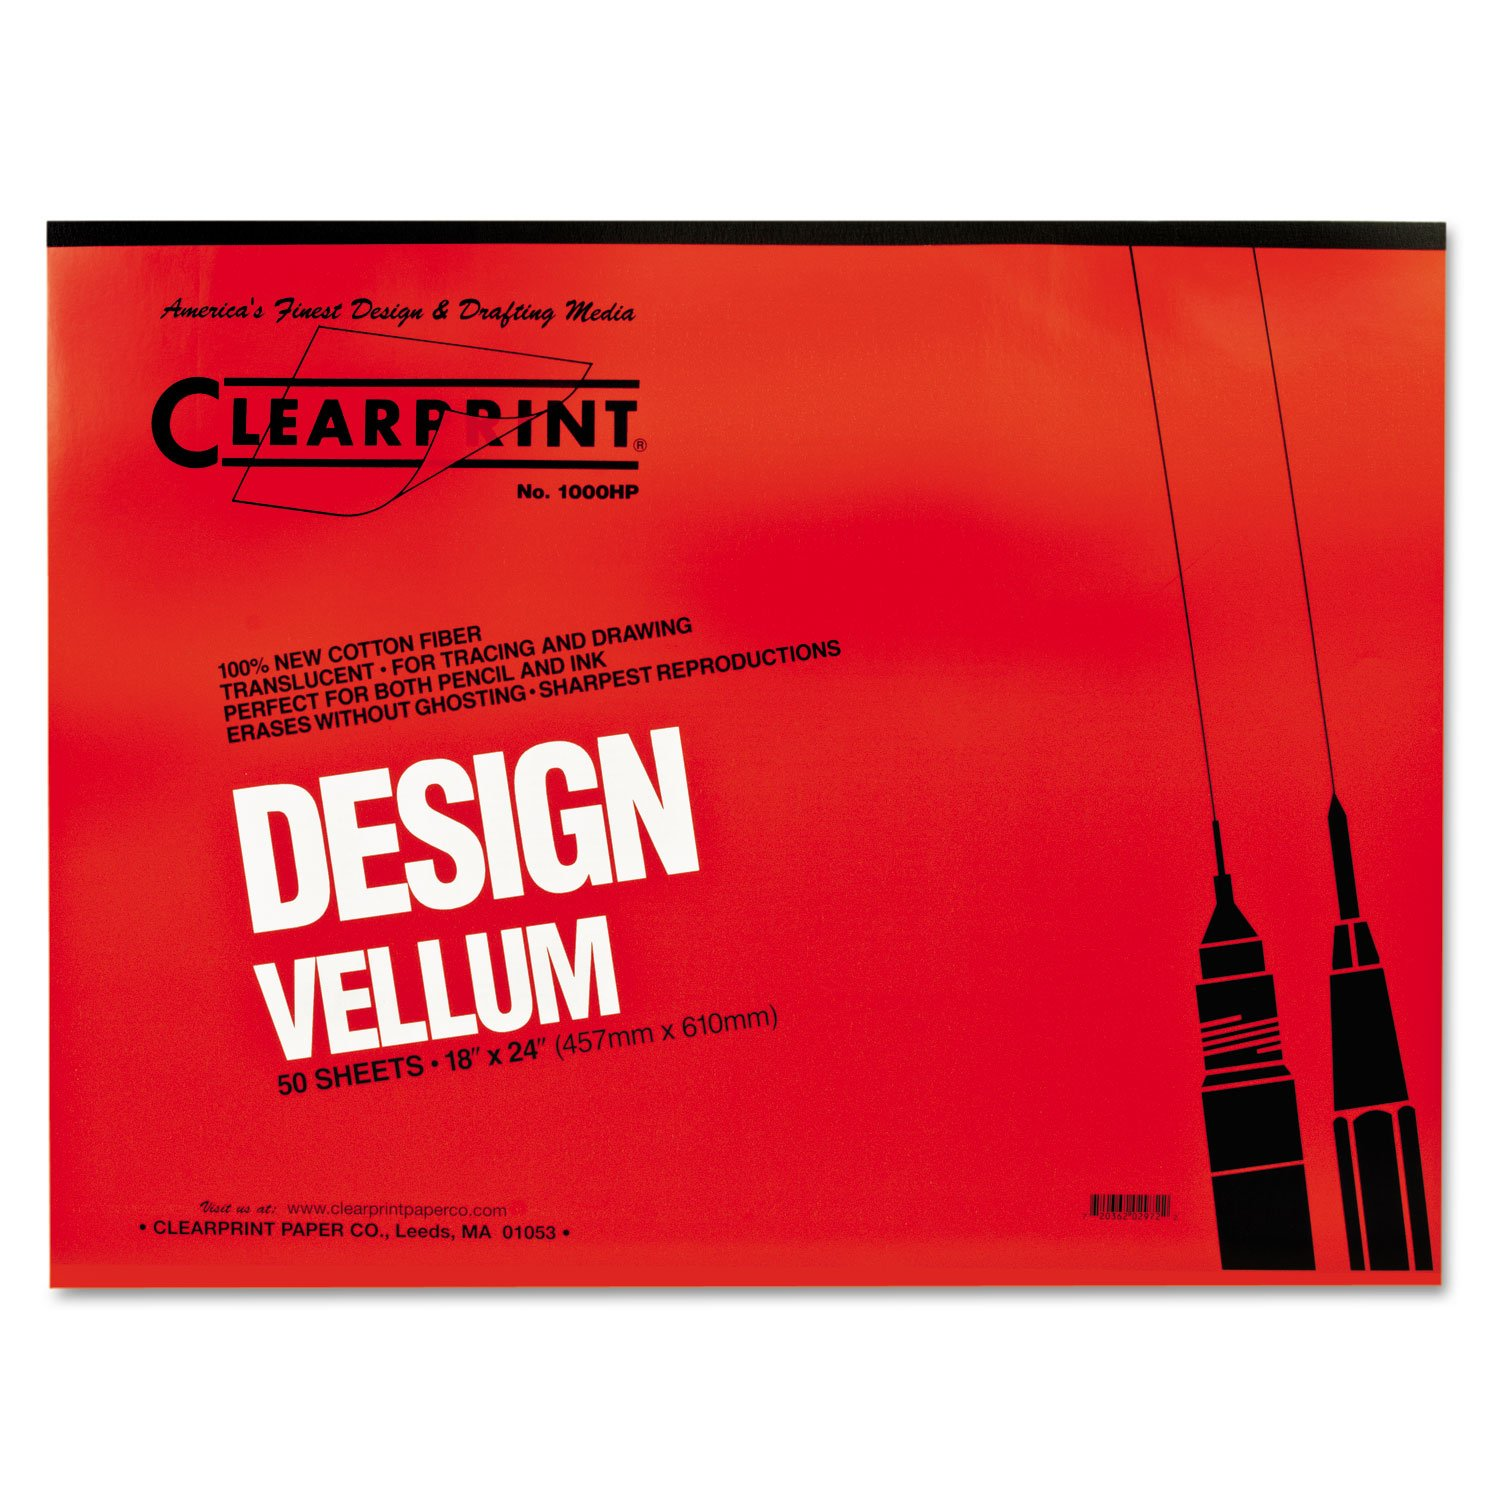 Clearprint 10001422 Design Vellum Paper, 16lb, White, 18 x 24, 50 Sheets/Pad by Clearprint